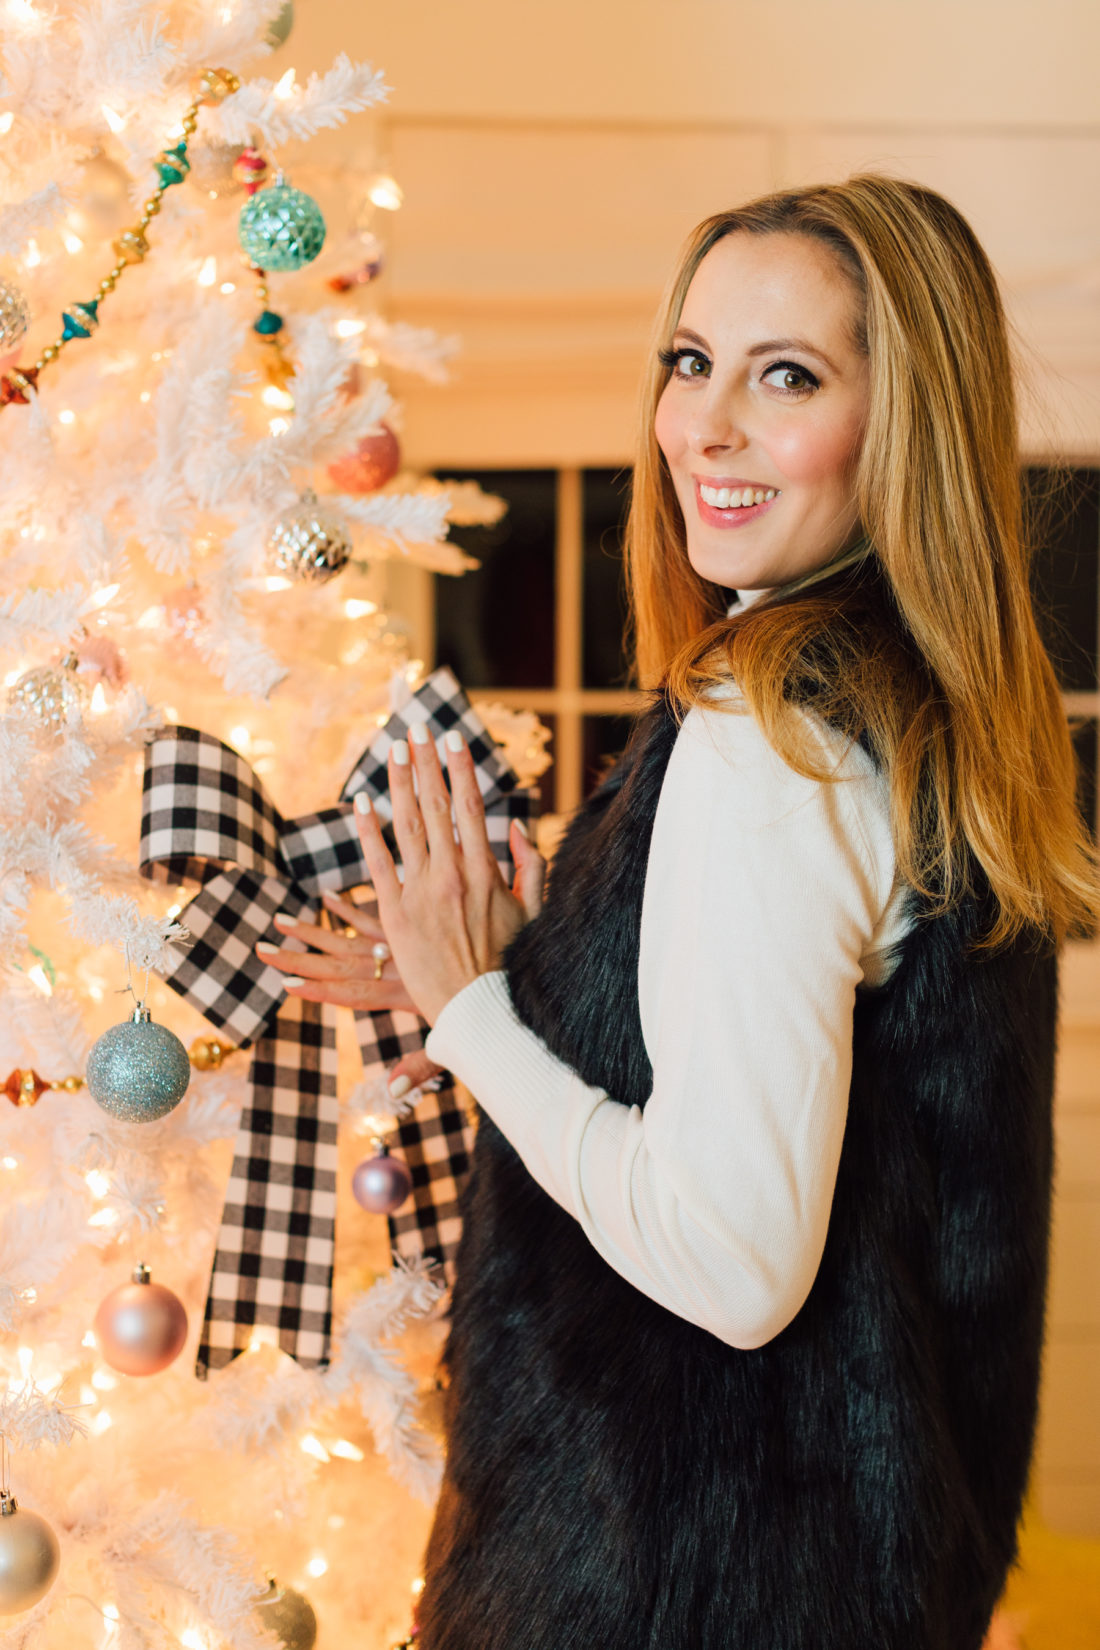 Eva Amurri poses by her Christmas Tree with some products bought at Walmart